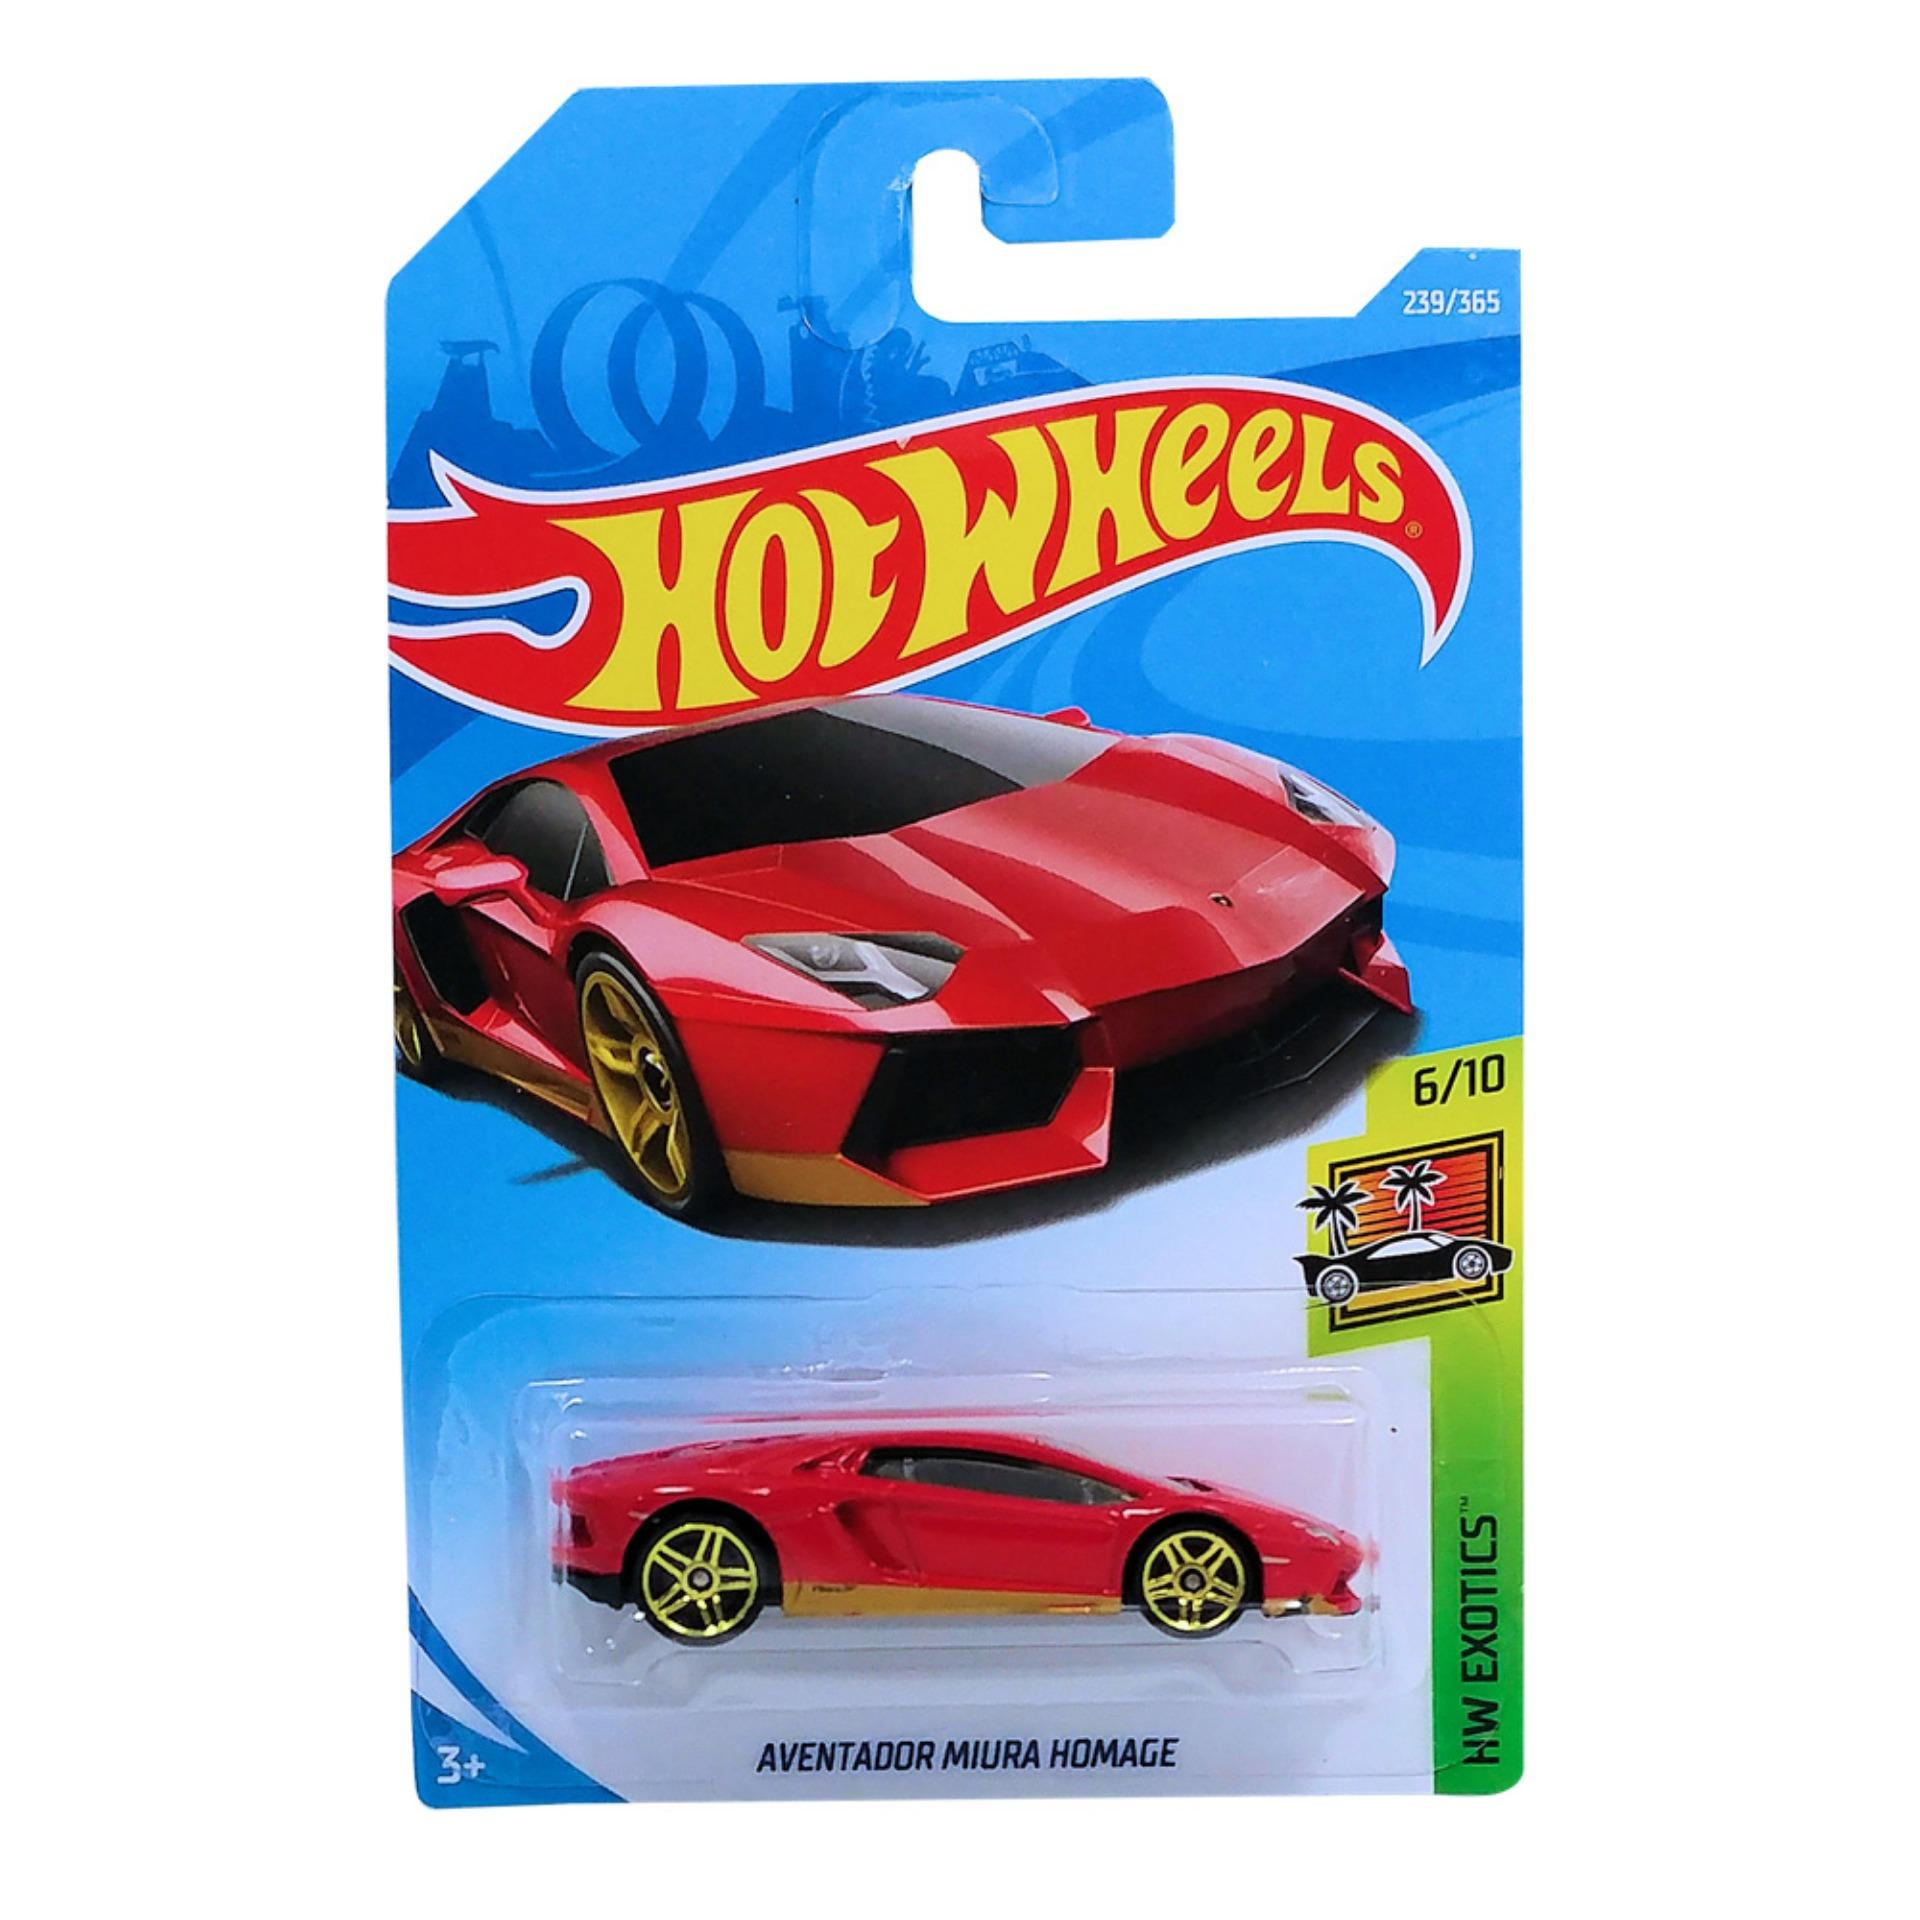 Hot Wheels Philippines Price List Scooter Cars Hotwheels Datsun 620 Red Basic Car Dc Almn Aventador Miura Homage